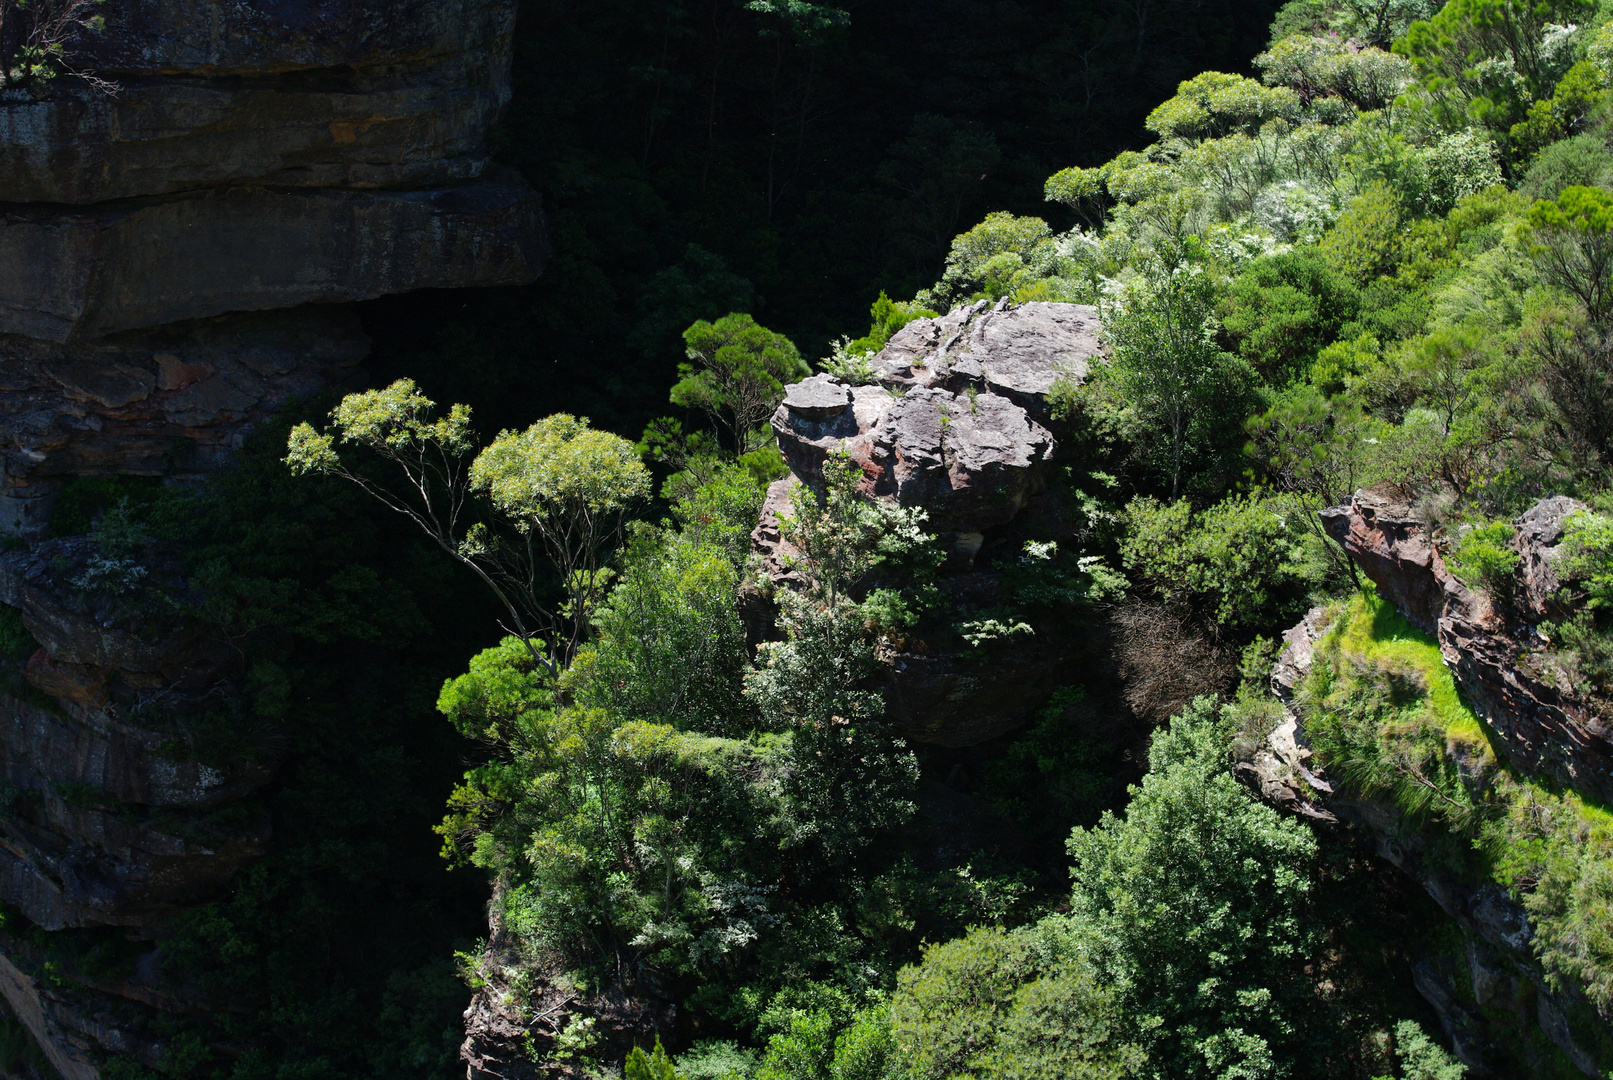 Australie 5 : Blue mountains